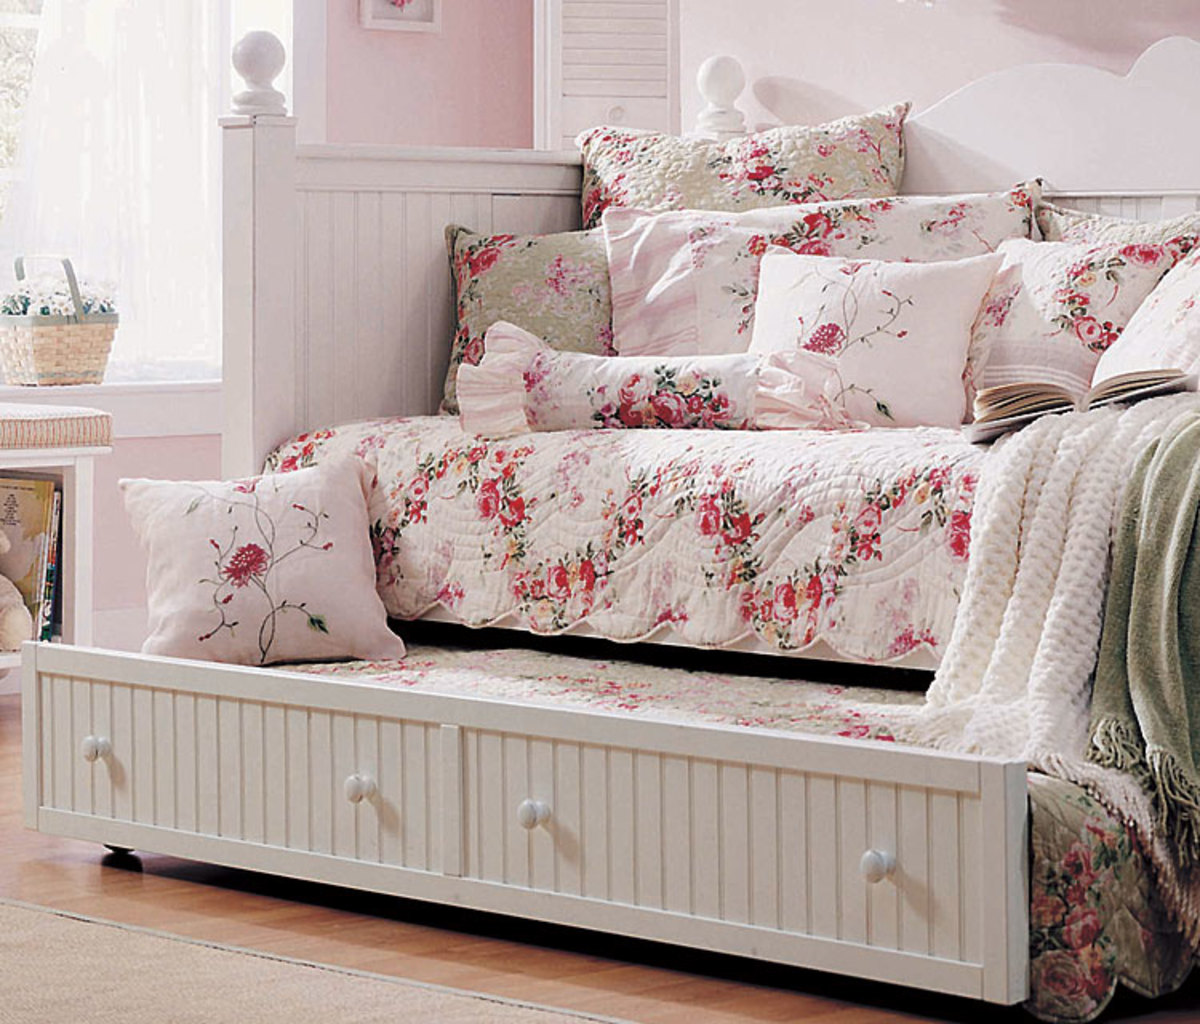 Daybed frame option with trundle and beadboard design details Daybed Frame Option - Spare Bedroom Ideas